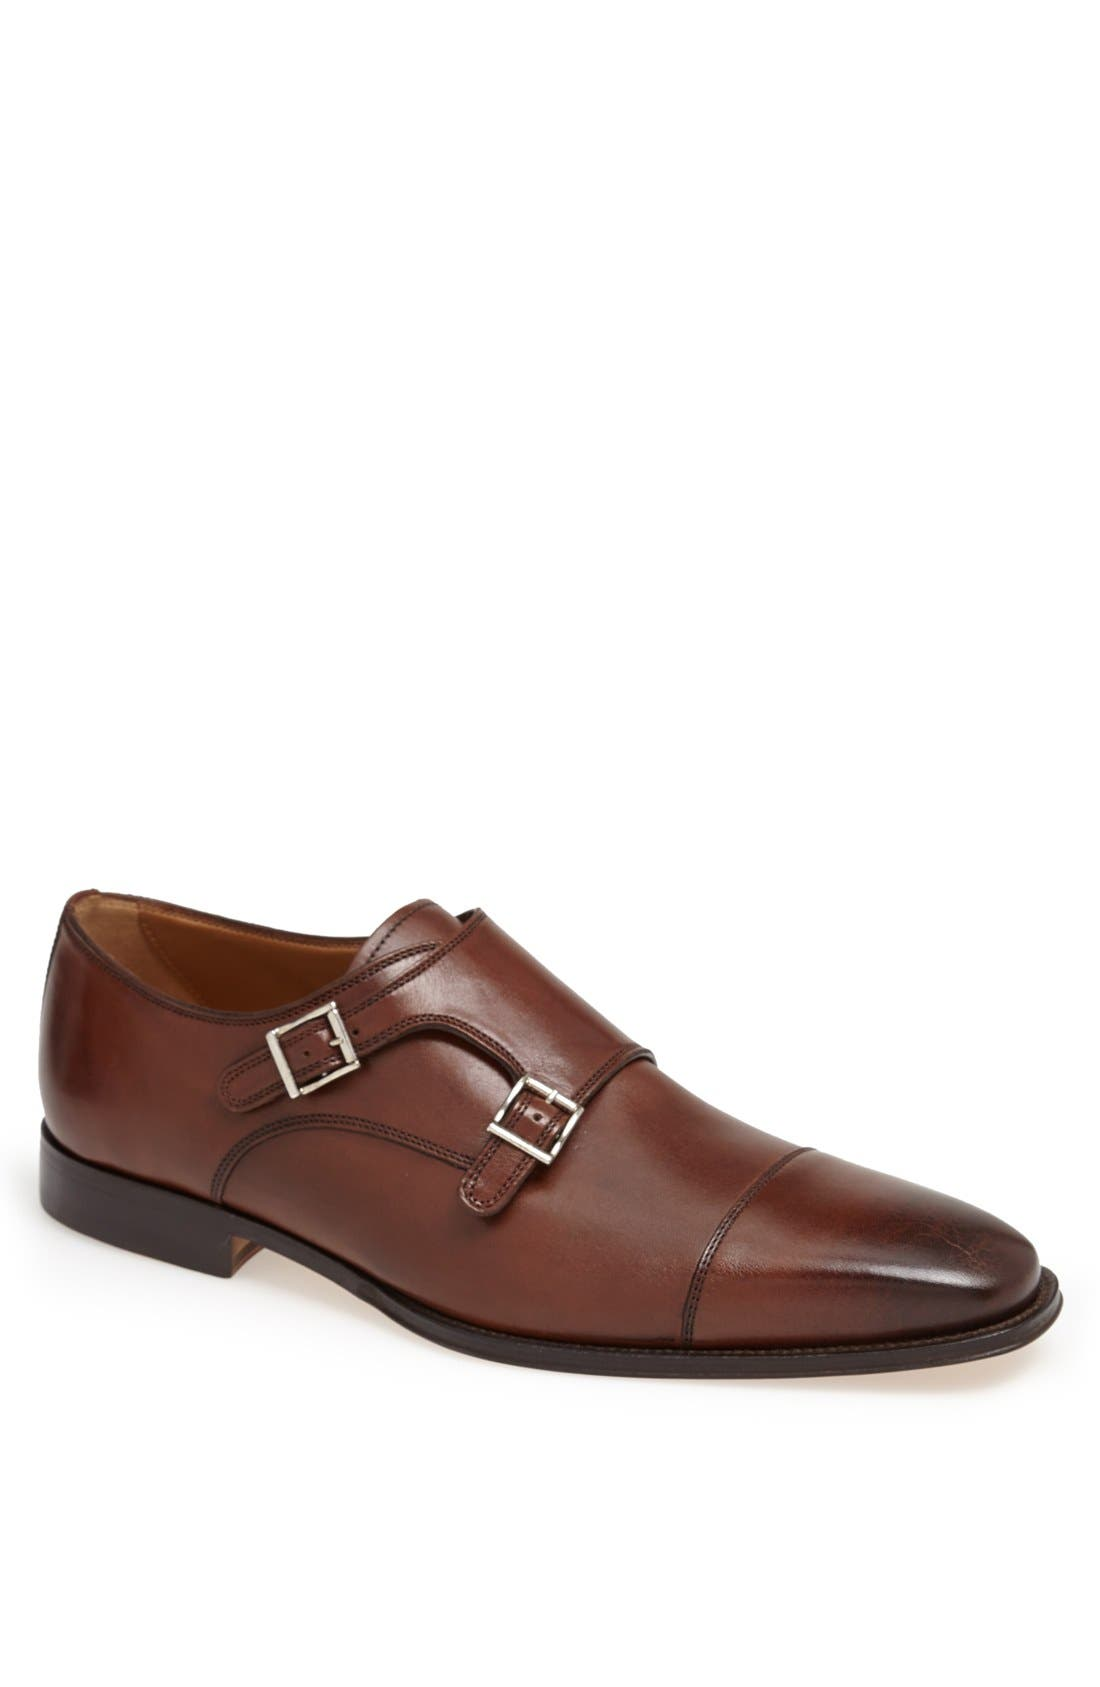 FLORSHEIM 'Classico' Double Monk Strap Slip-On